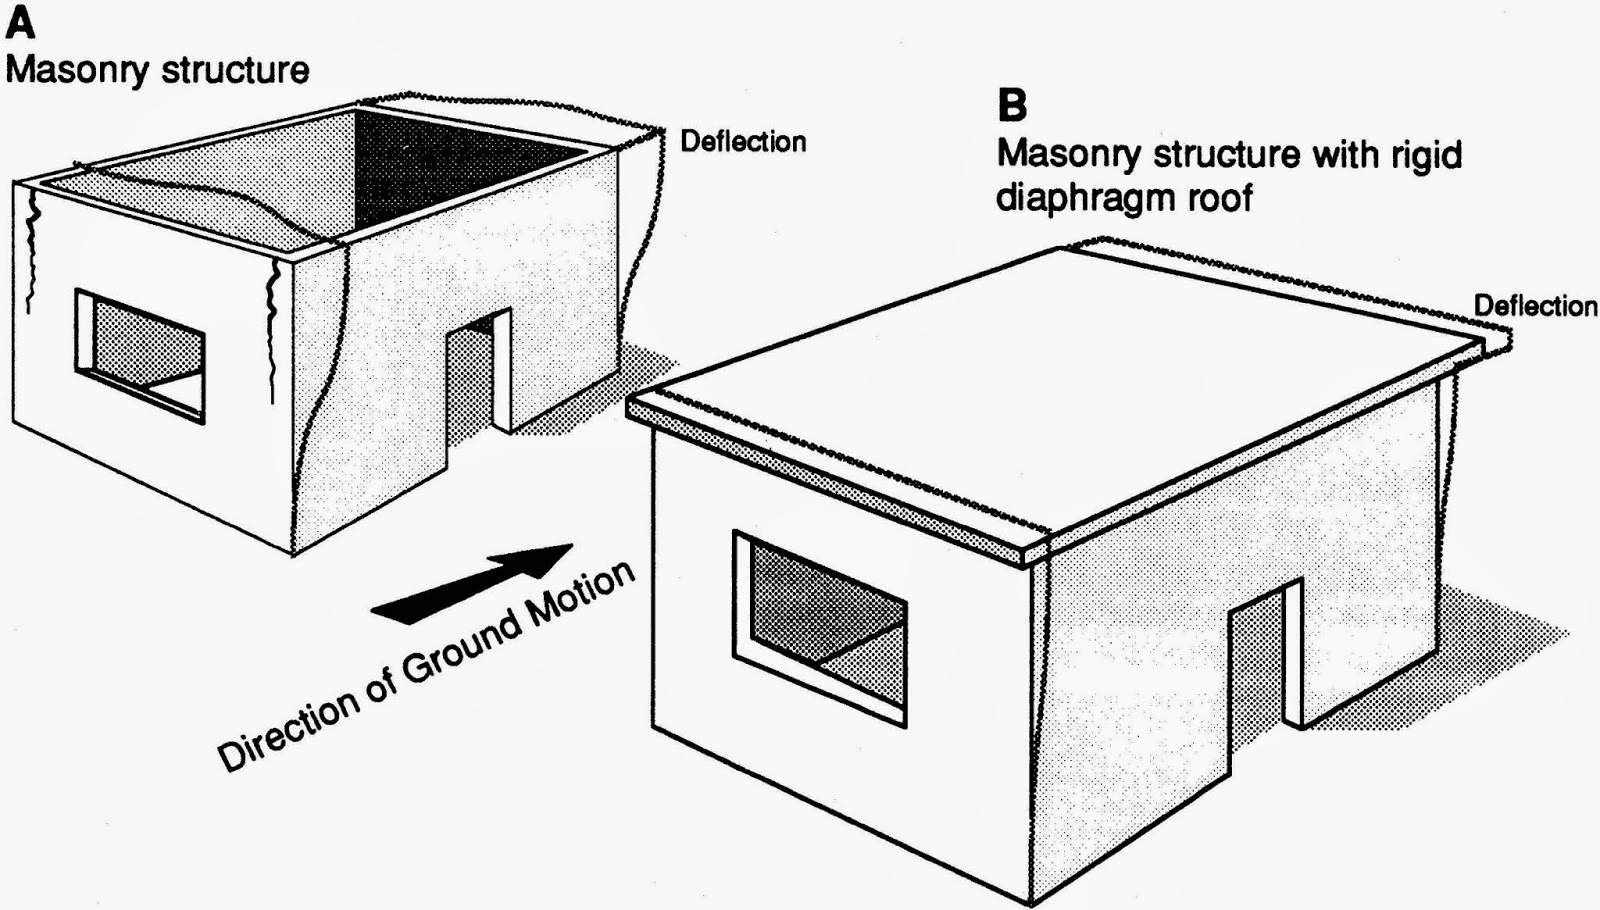 Figure 1: Response of single-storey masonry building to earthquake ground shaking